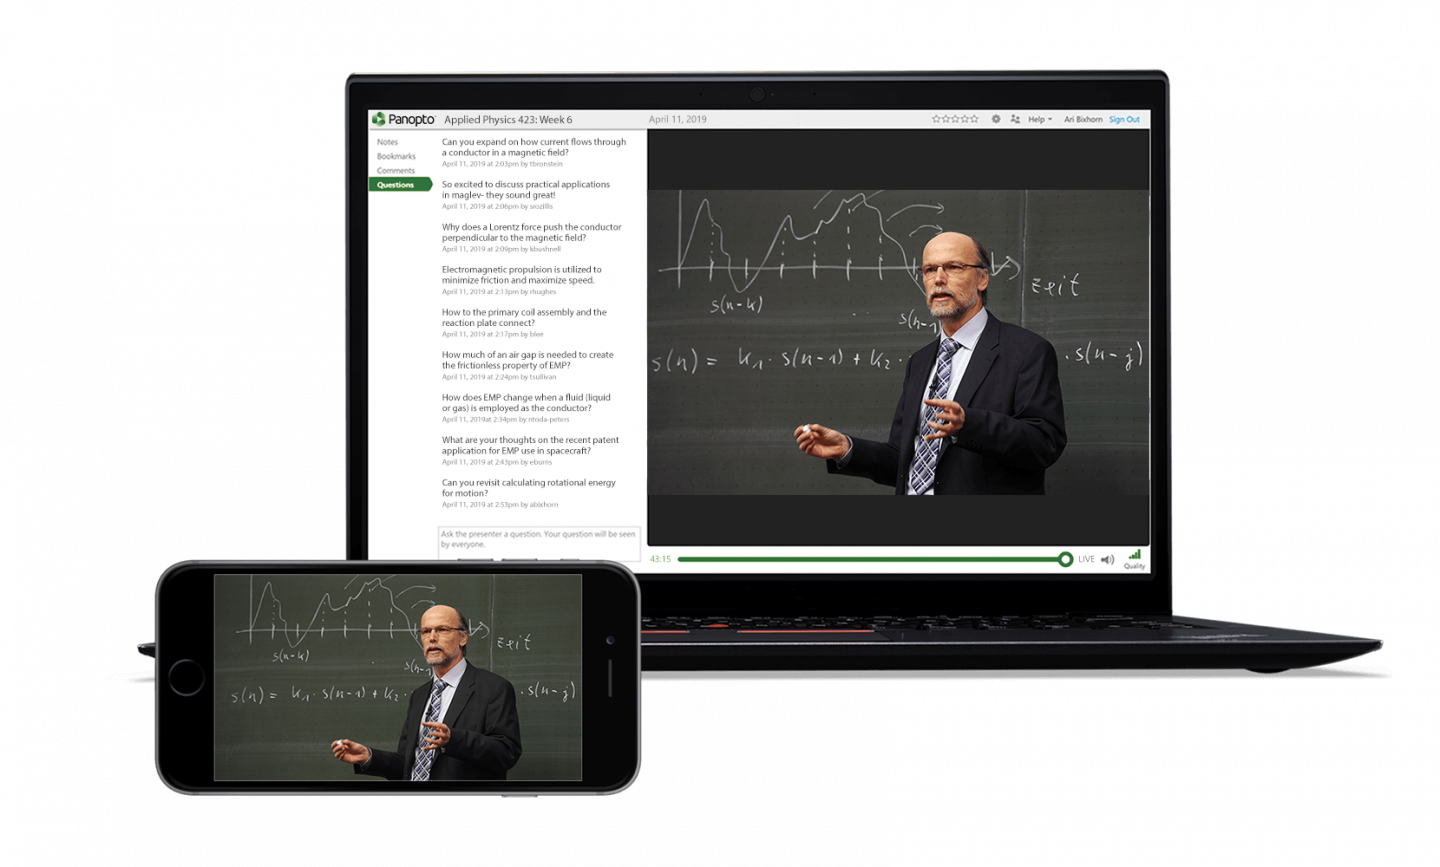 Live stream lectures to distance learners with Panopto's video platform